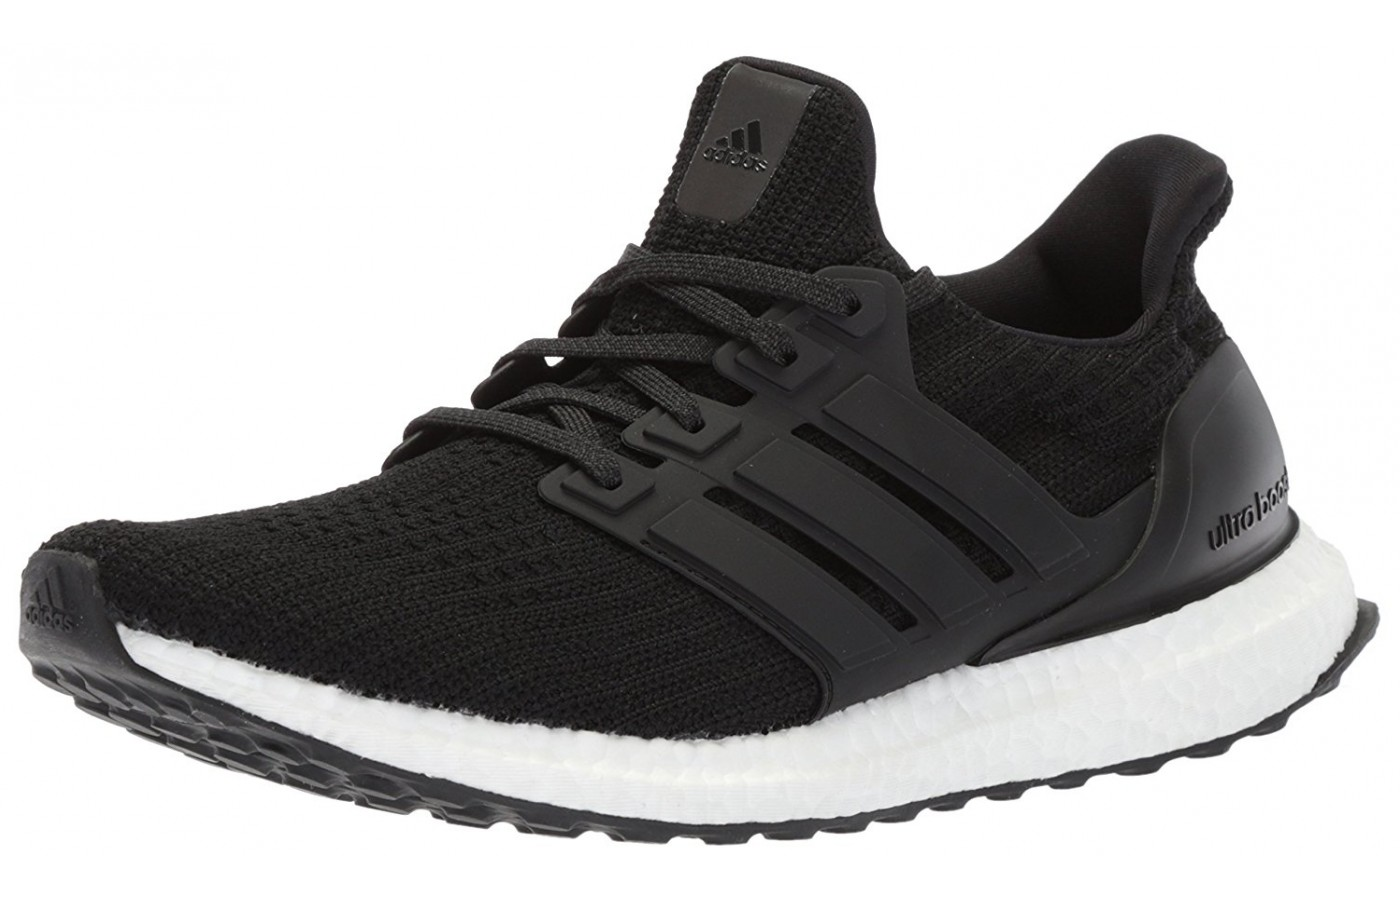 f45565a71c12 Adidas Ultraboost 3.0 Reviewed   Tested for Performance - WalkJogRun